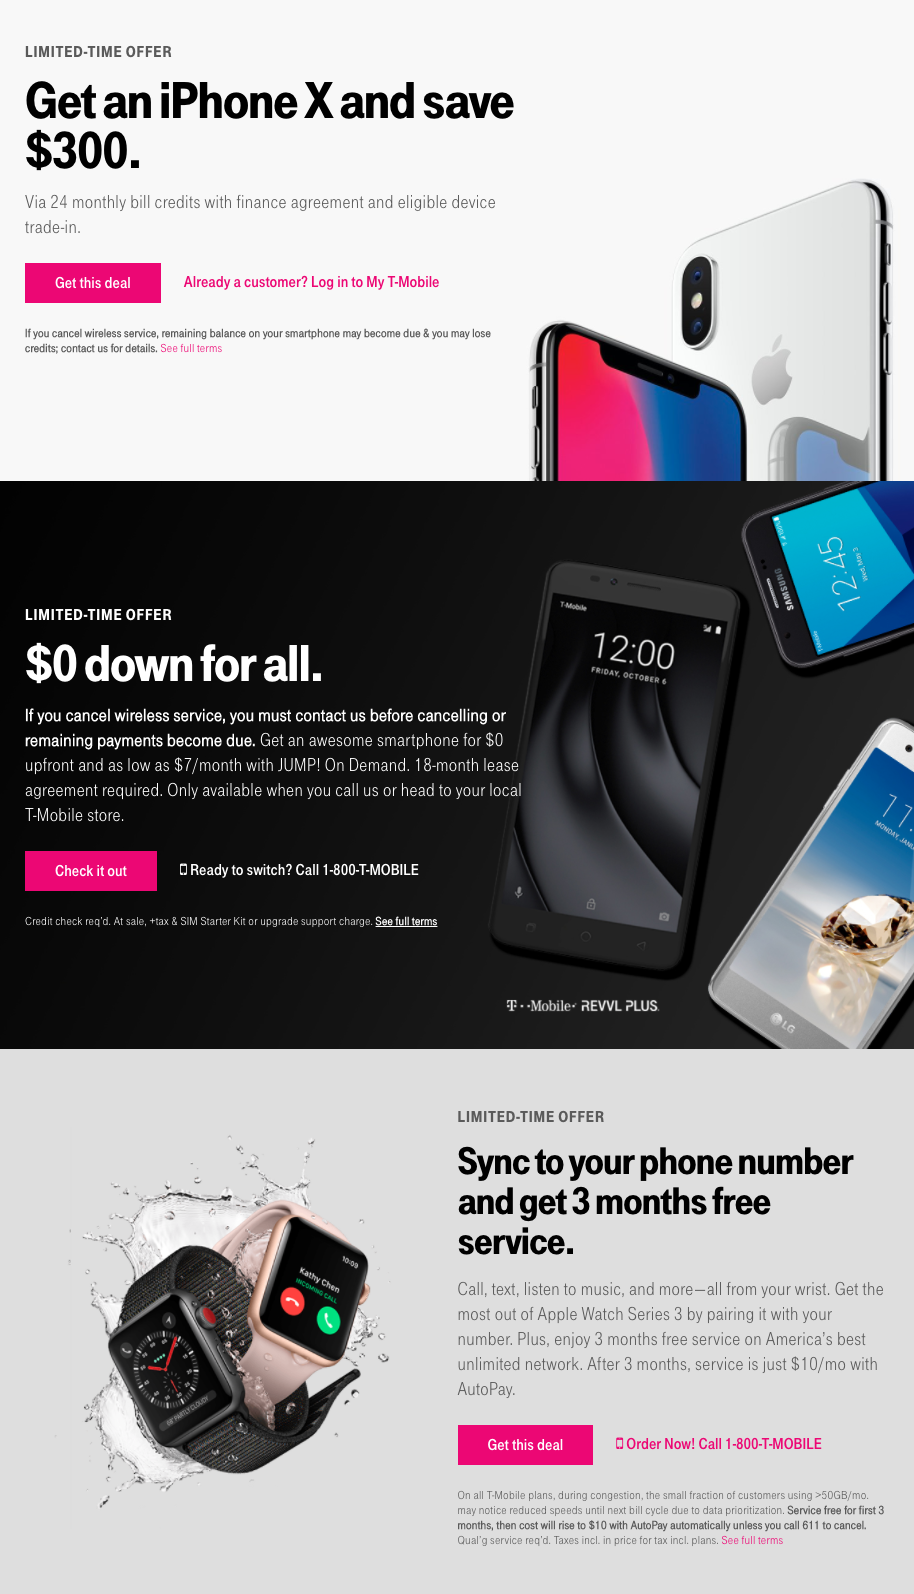 T Mobile Black Friday 2017 Ads And Deals See All Smartphone Deals During Tmobile Black Friday Sale And Find More Black Friday Specials On Not Only Tmobile Phone